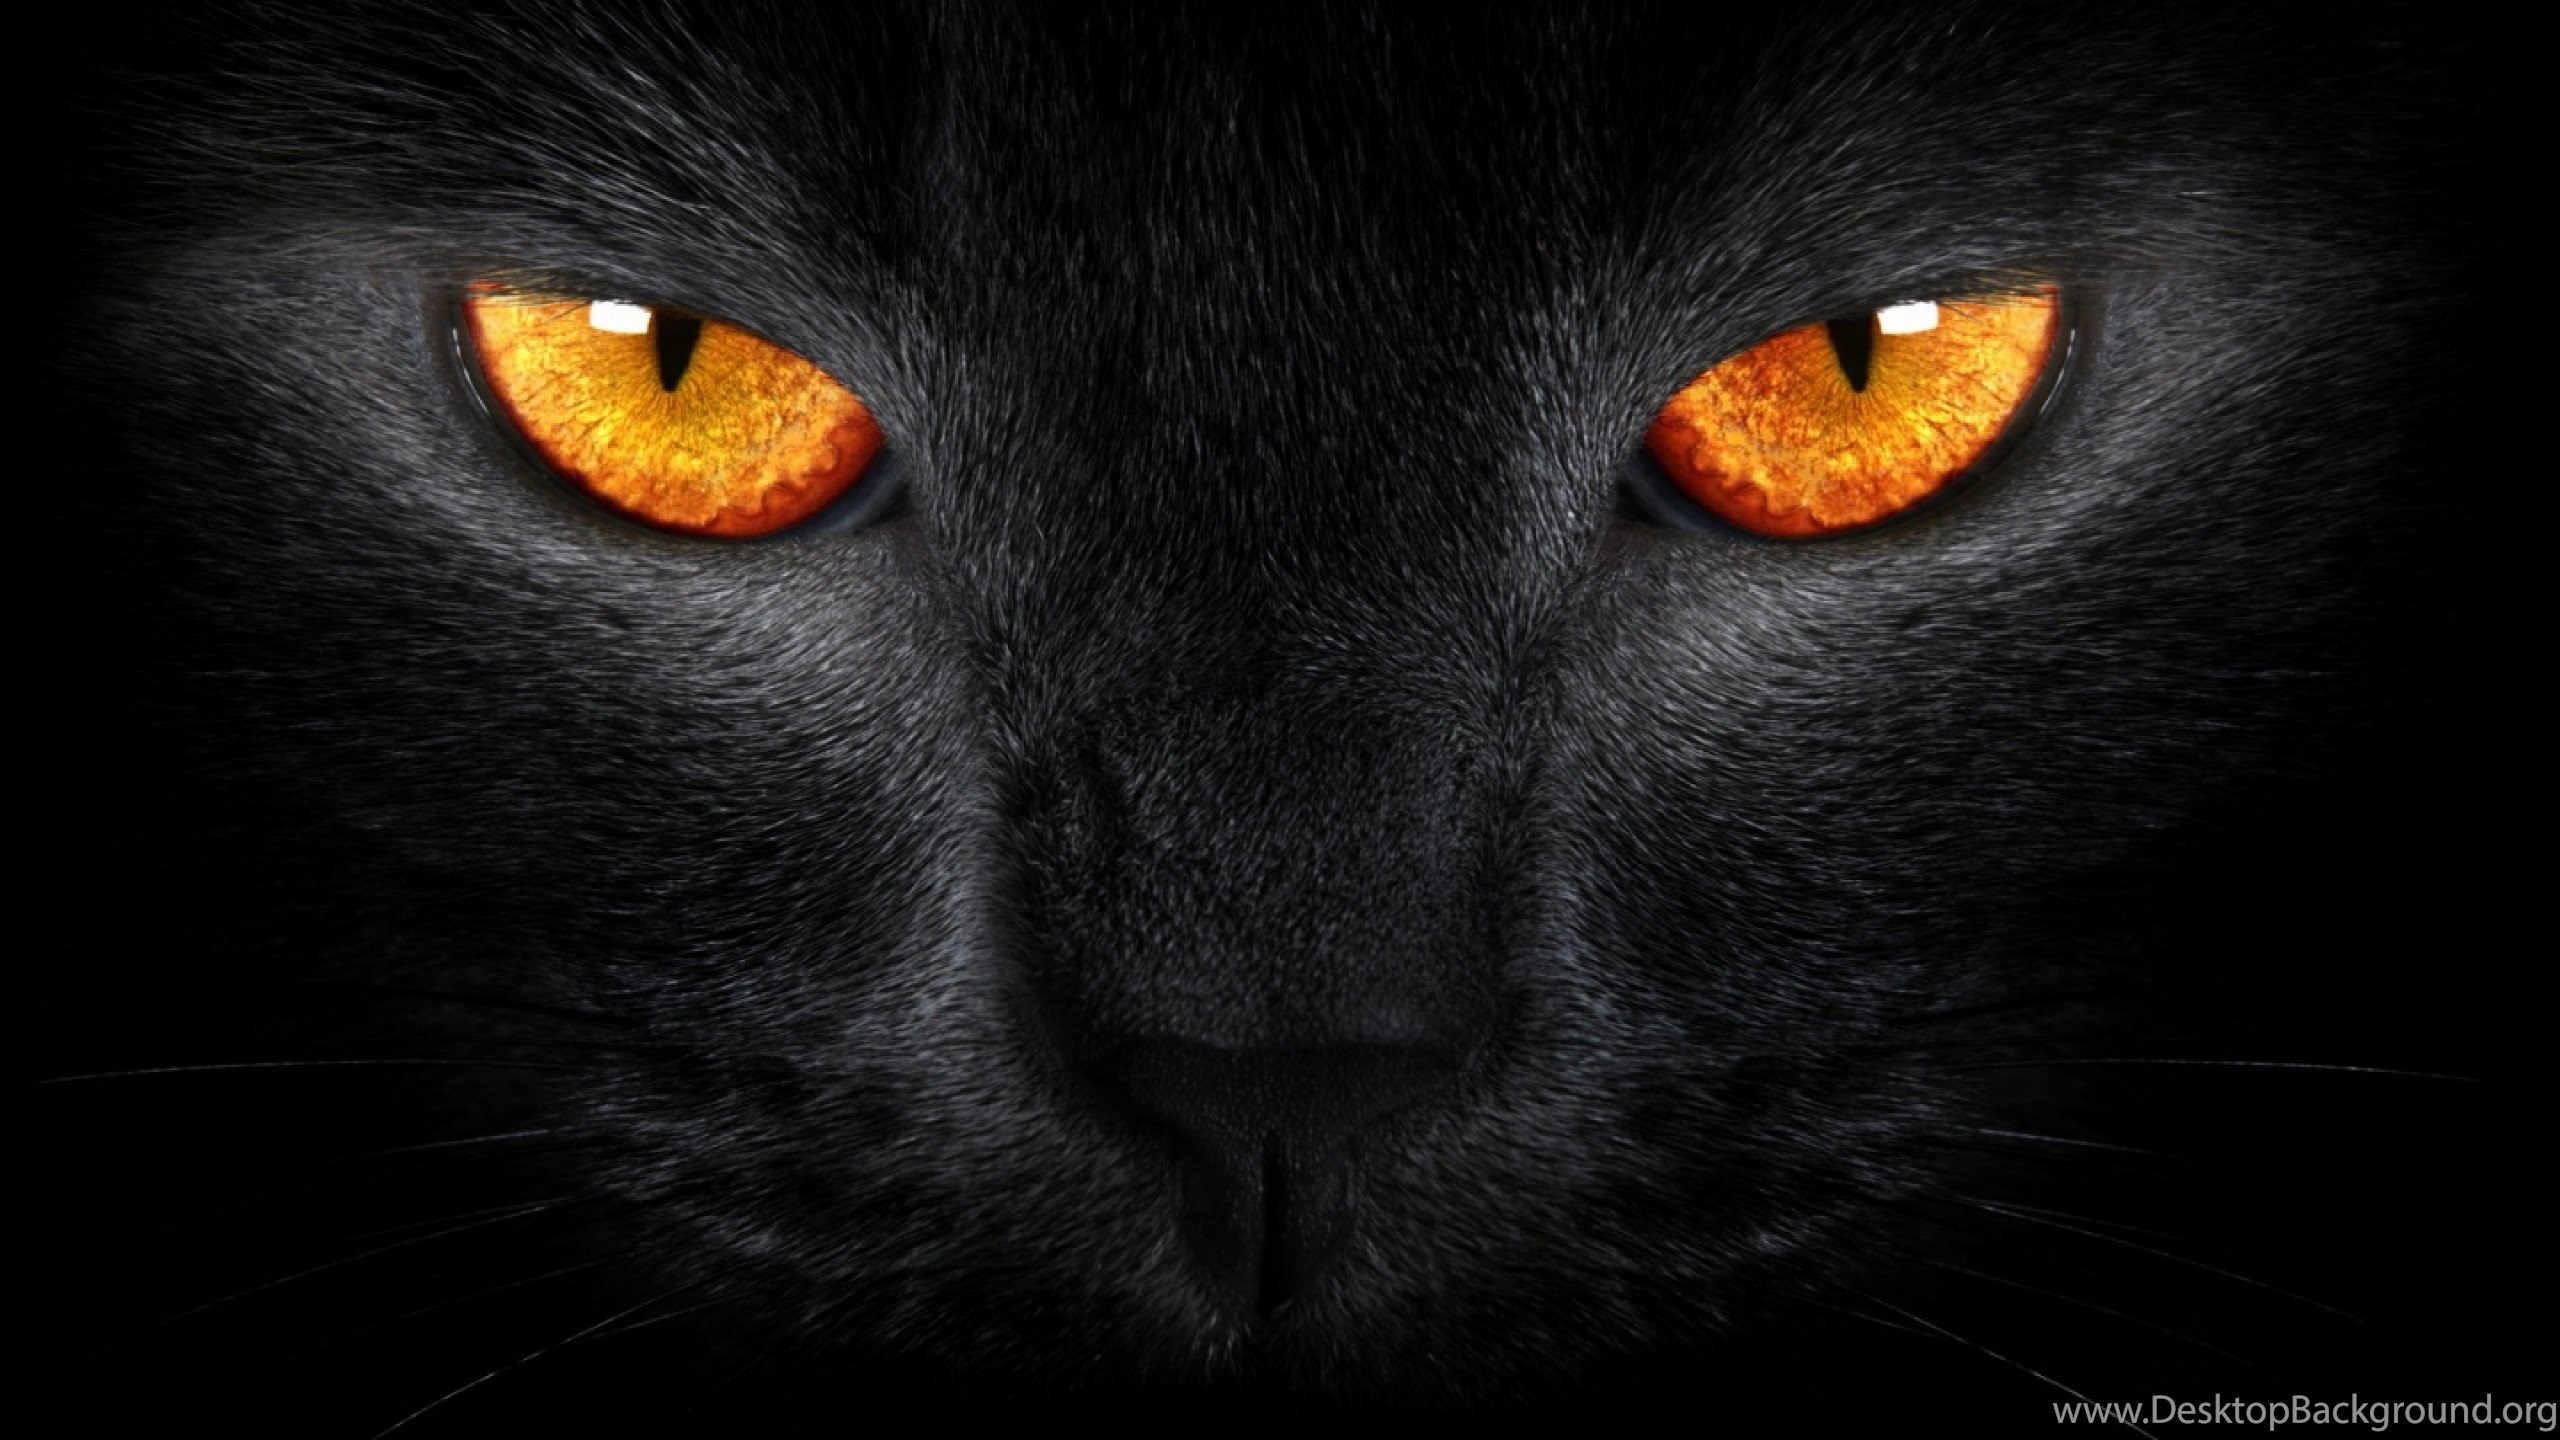 Wallpapers Tiger Eye Homepage Cat Black Orange Eyes 2560x1440